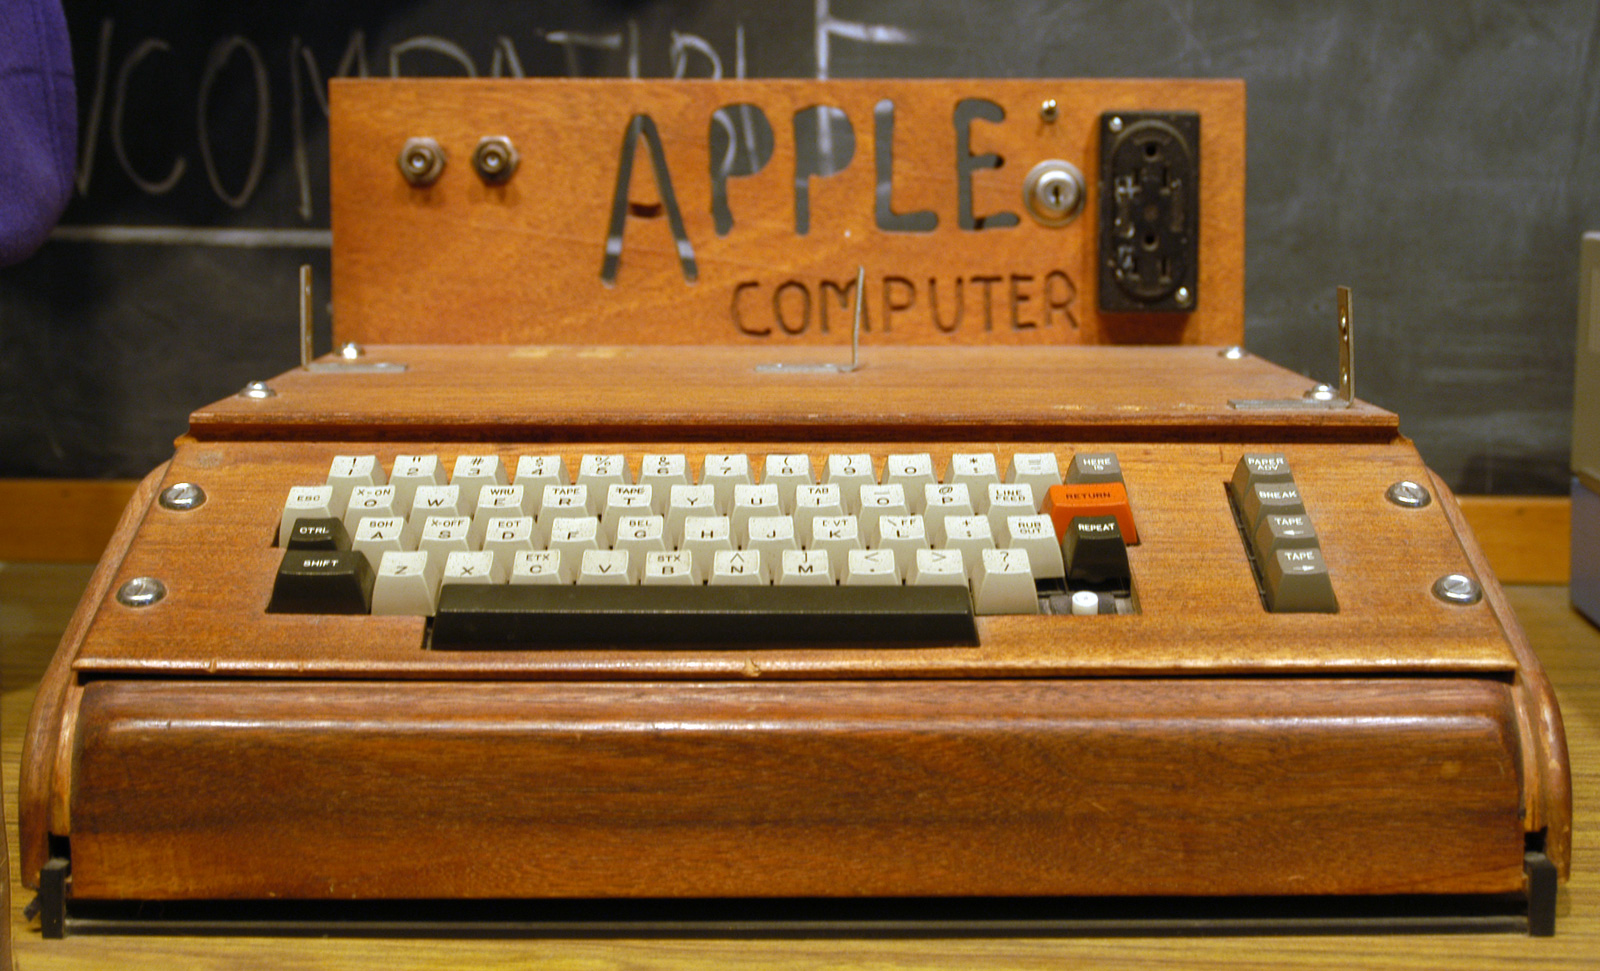 The Apple-1 Computer customised with an after-market wooden enclosure with carved name and keyboard